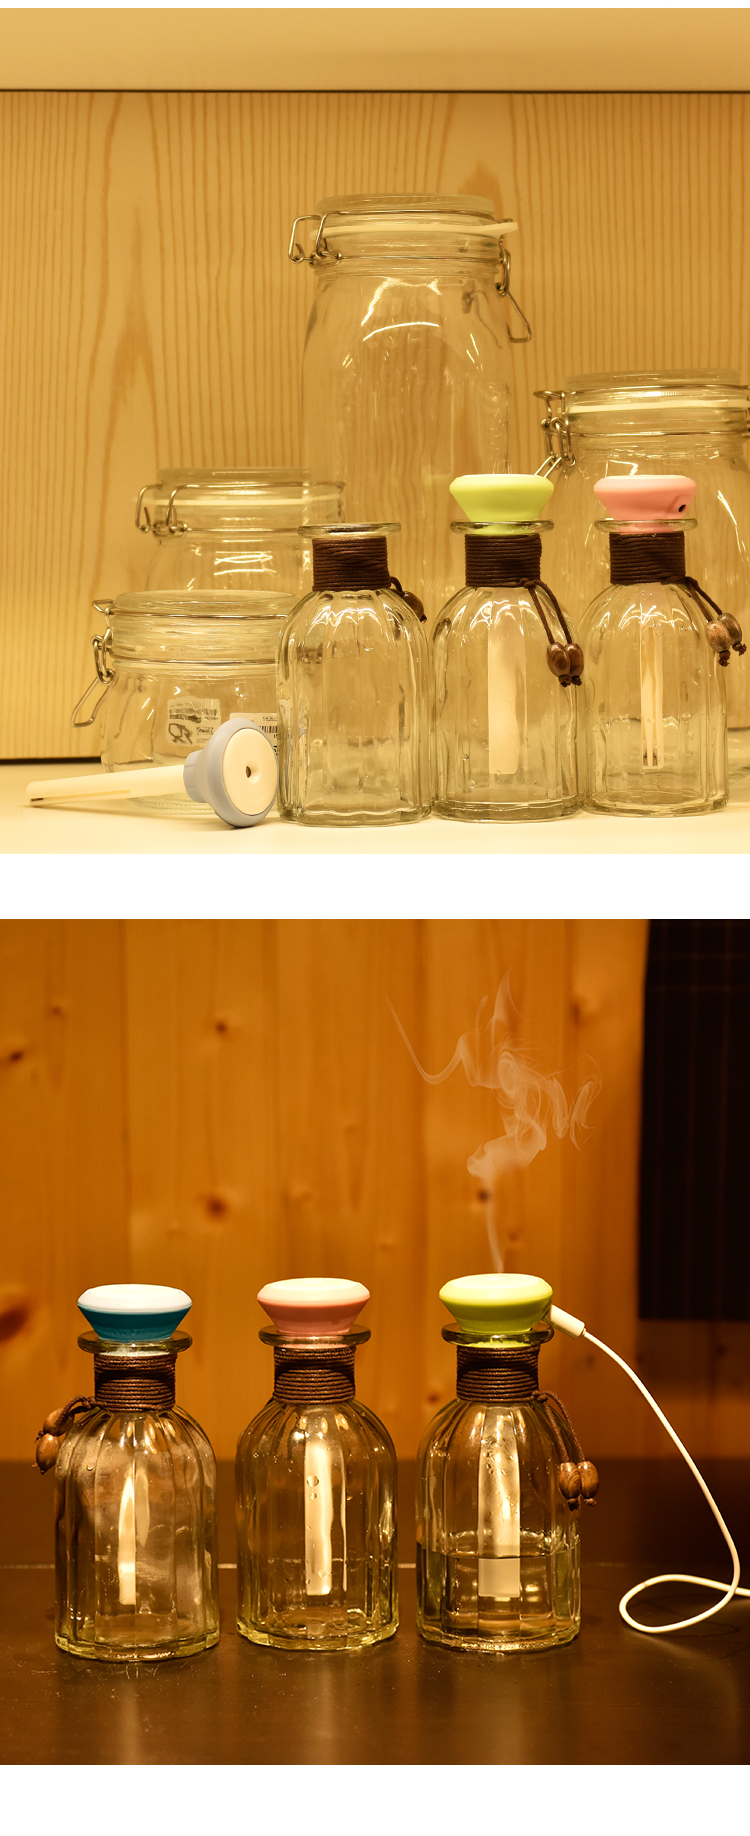 2016 NEW Steam Air Purifier Aroma Diffuser Essential oil diffuser Aromatherapy Humidifier